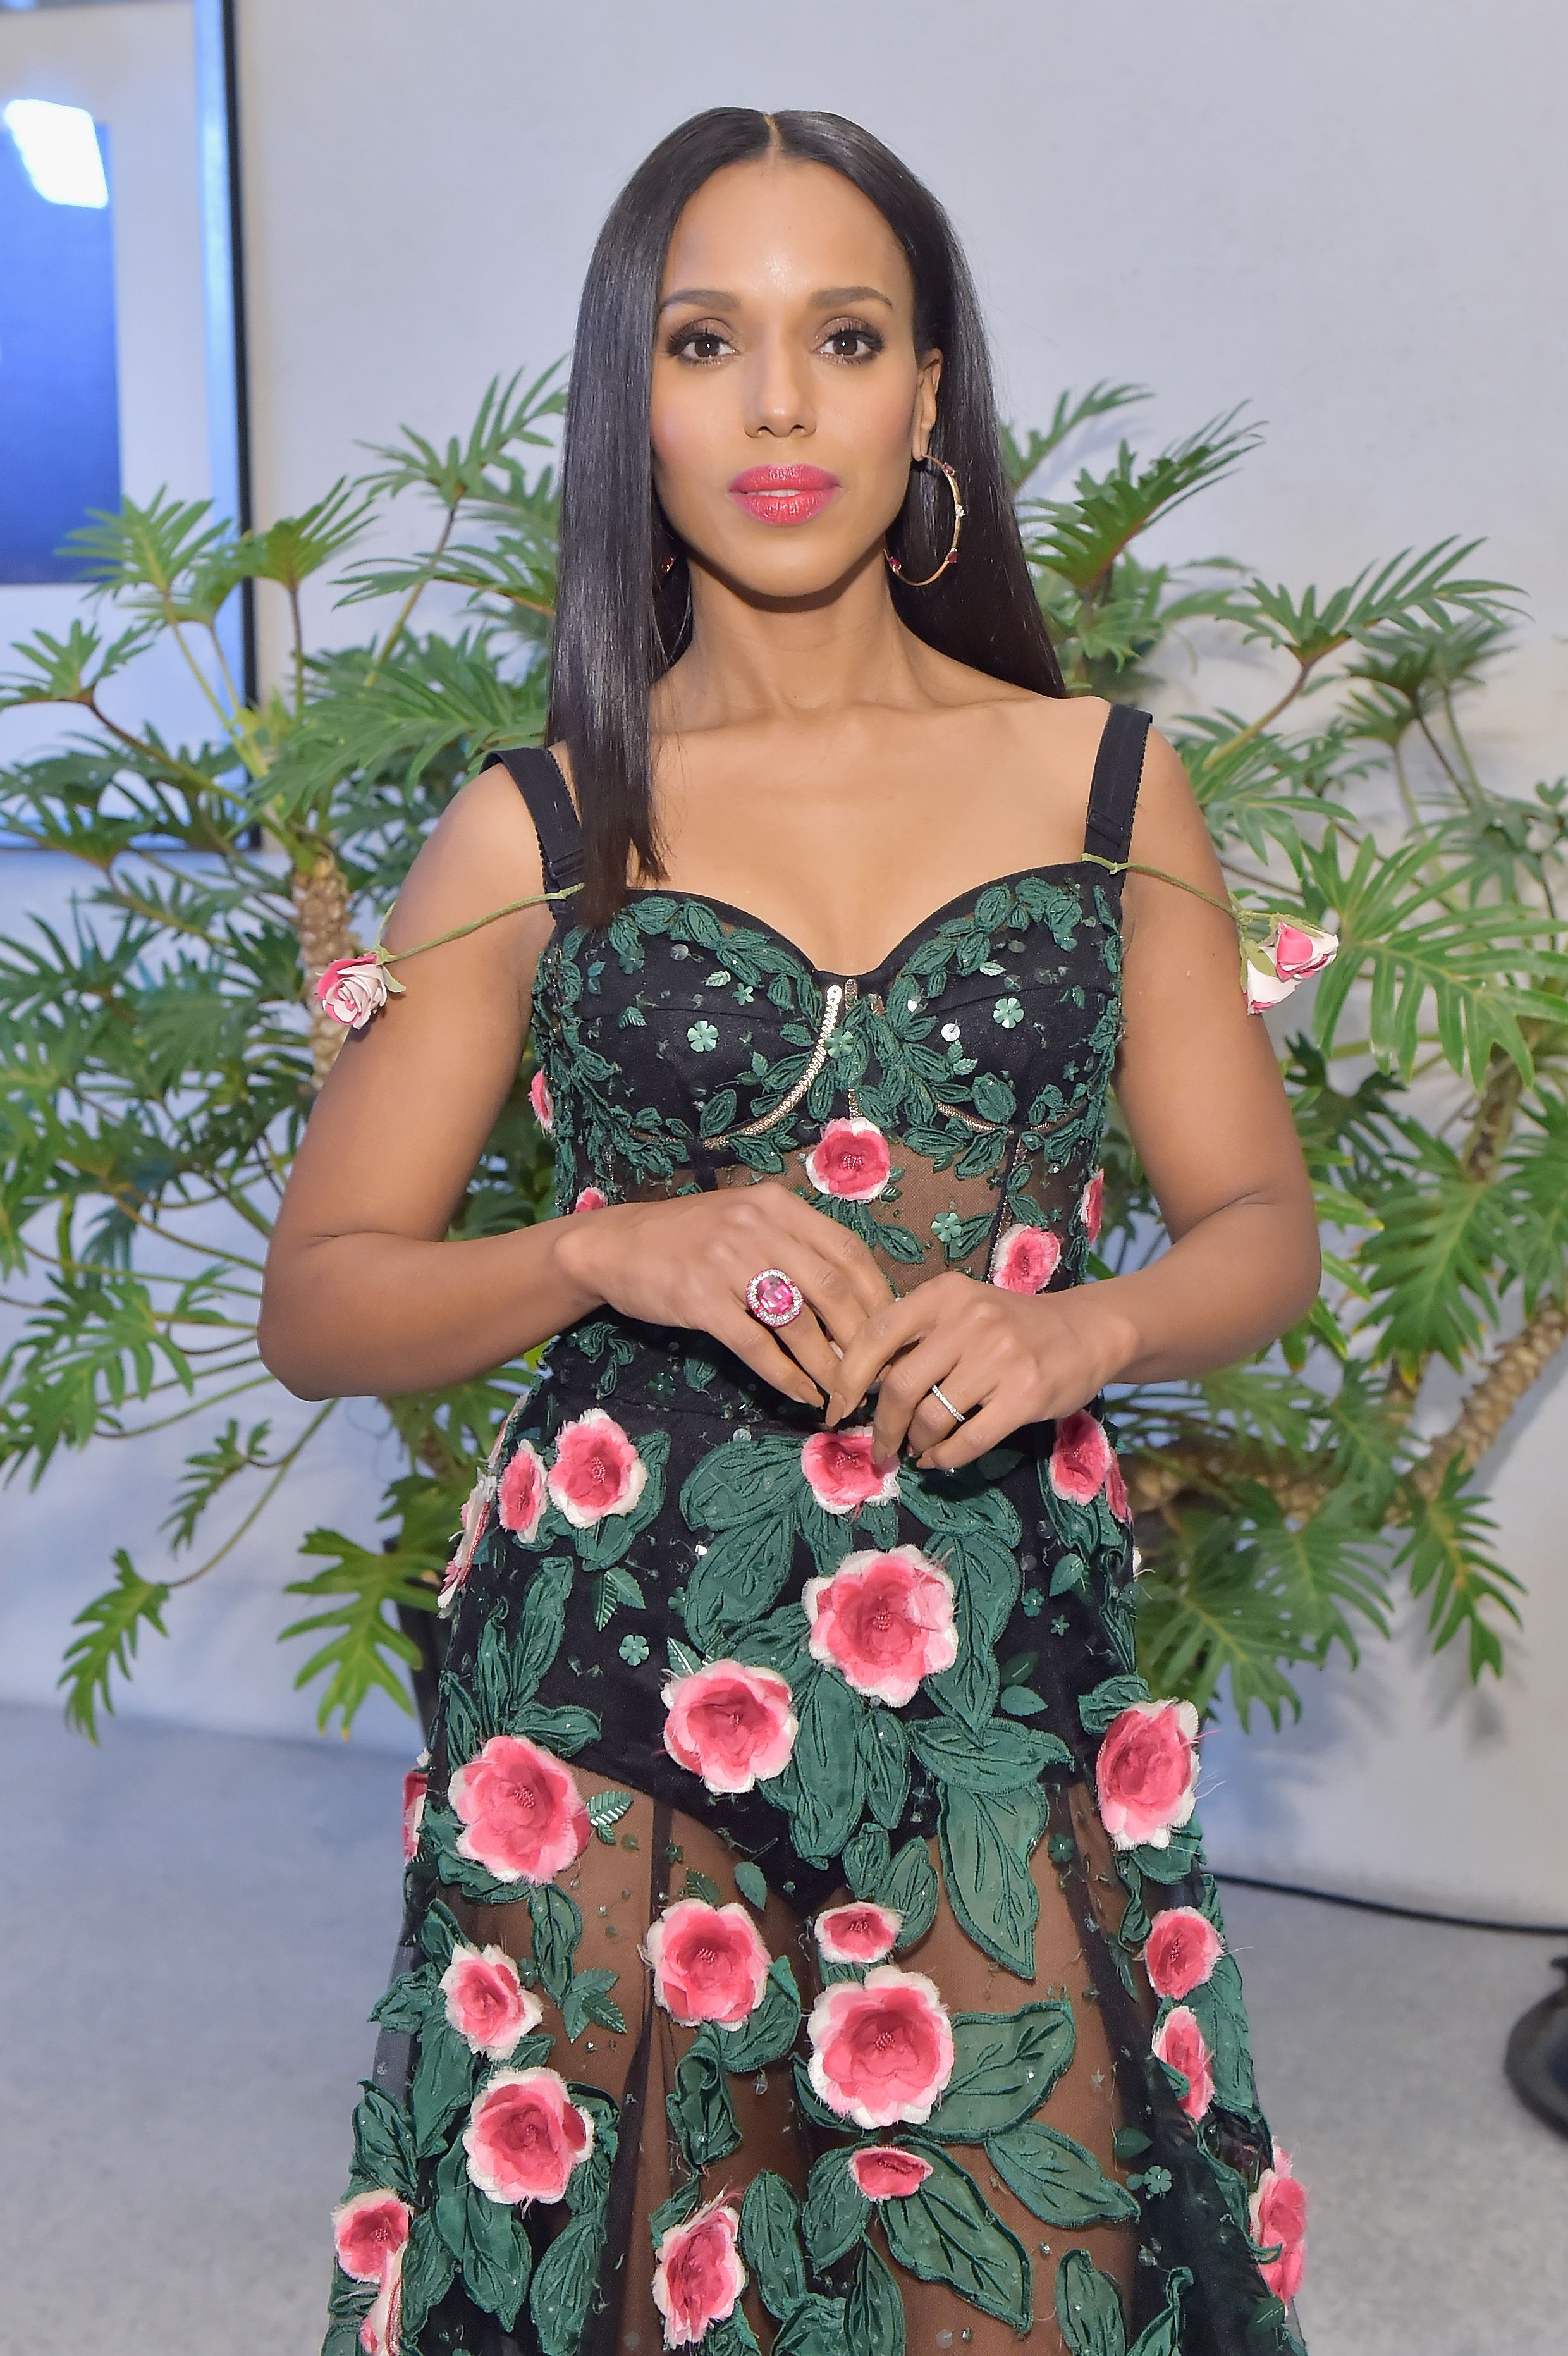 Kerry Washington attends the Costume Designers Guild Awards at The Beverly Hilton Hotel on February 20, 2018 in Beverly Hills, California. | Source: Getty Images